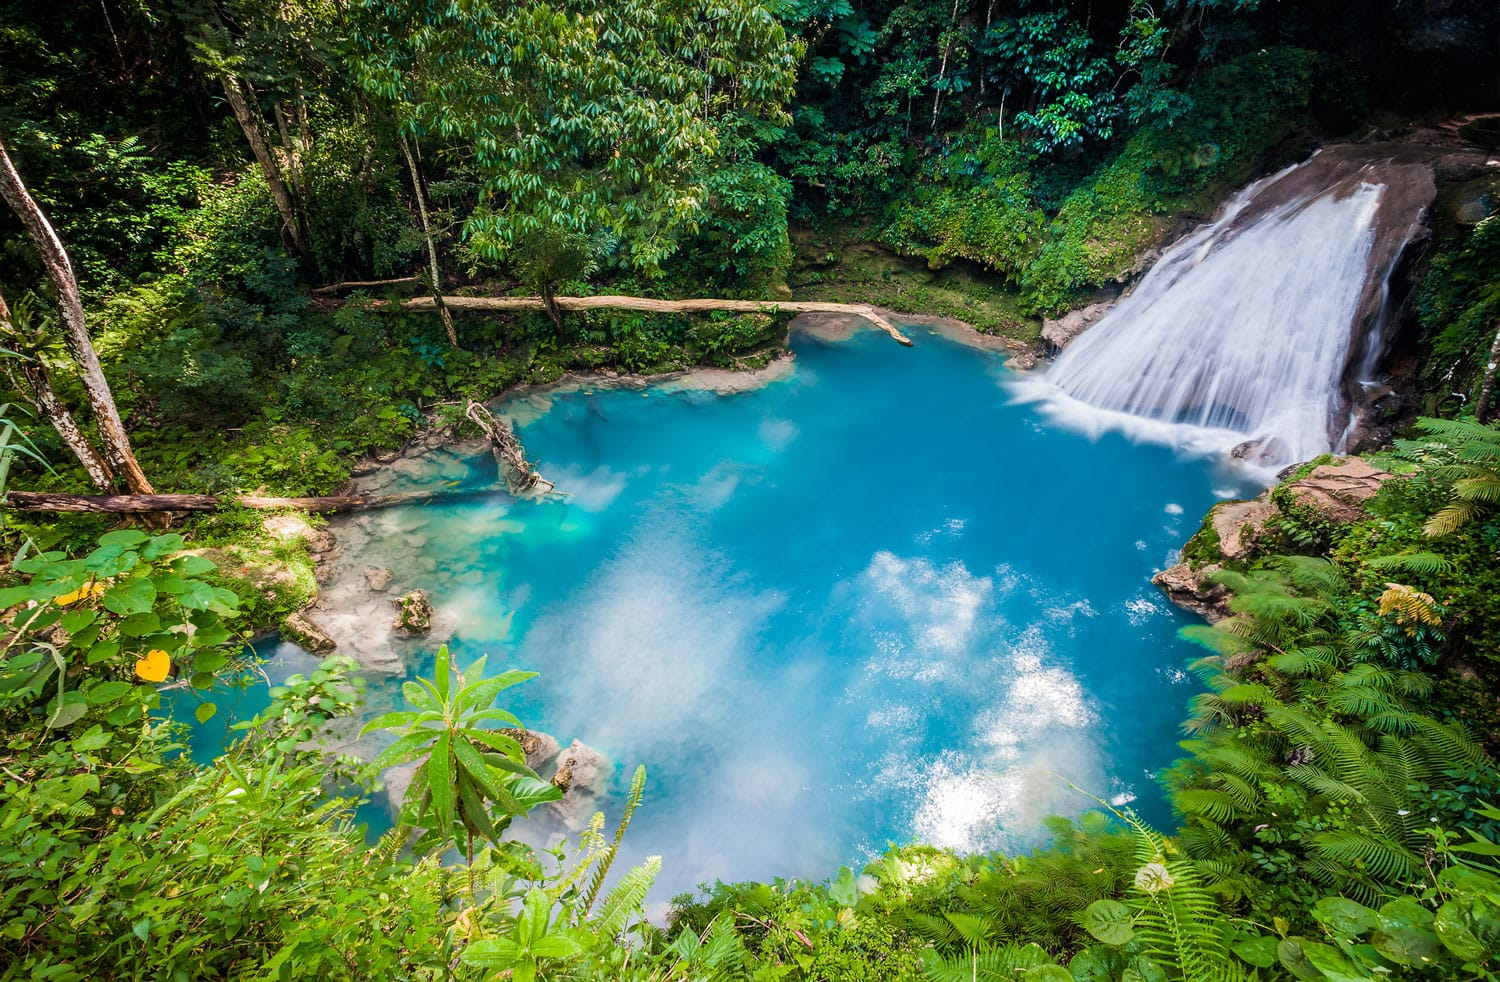 Blue hole waterfall from above, Jamaica